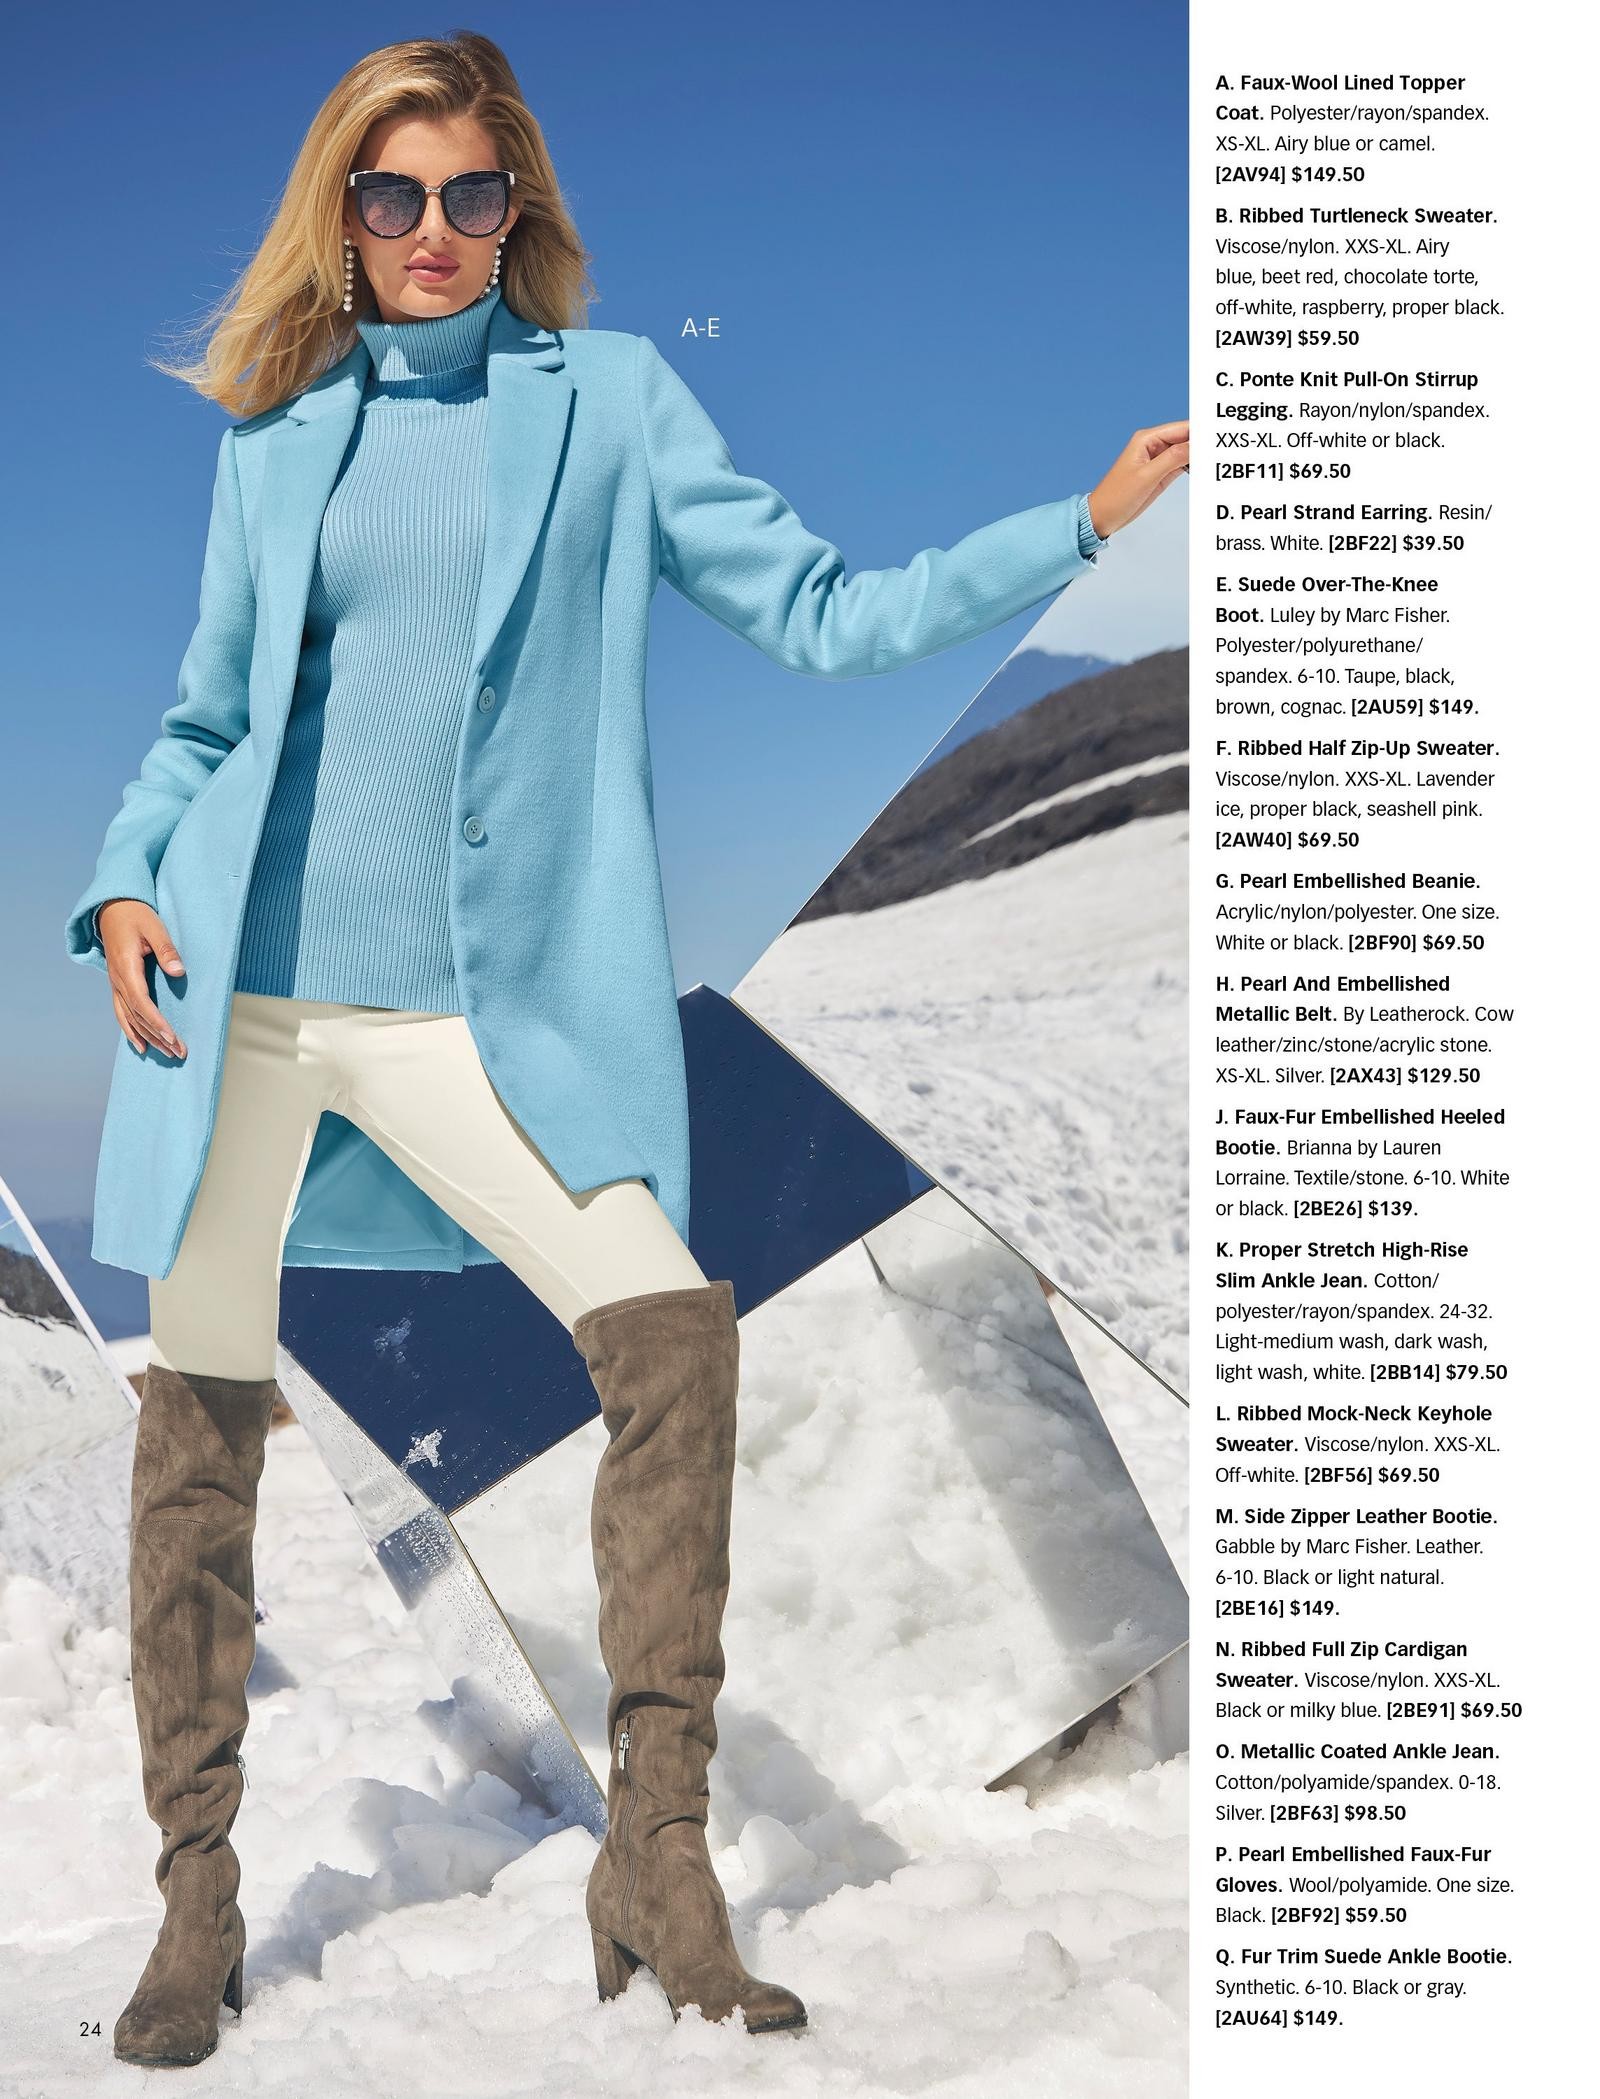 model wearing a light blue faux-wool topper coat, light blue ribbed turtleneck sweater, off-white leggings, pearl strand earrings, and taupe over-the-knee boots.